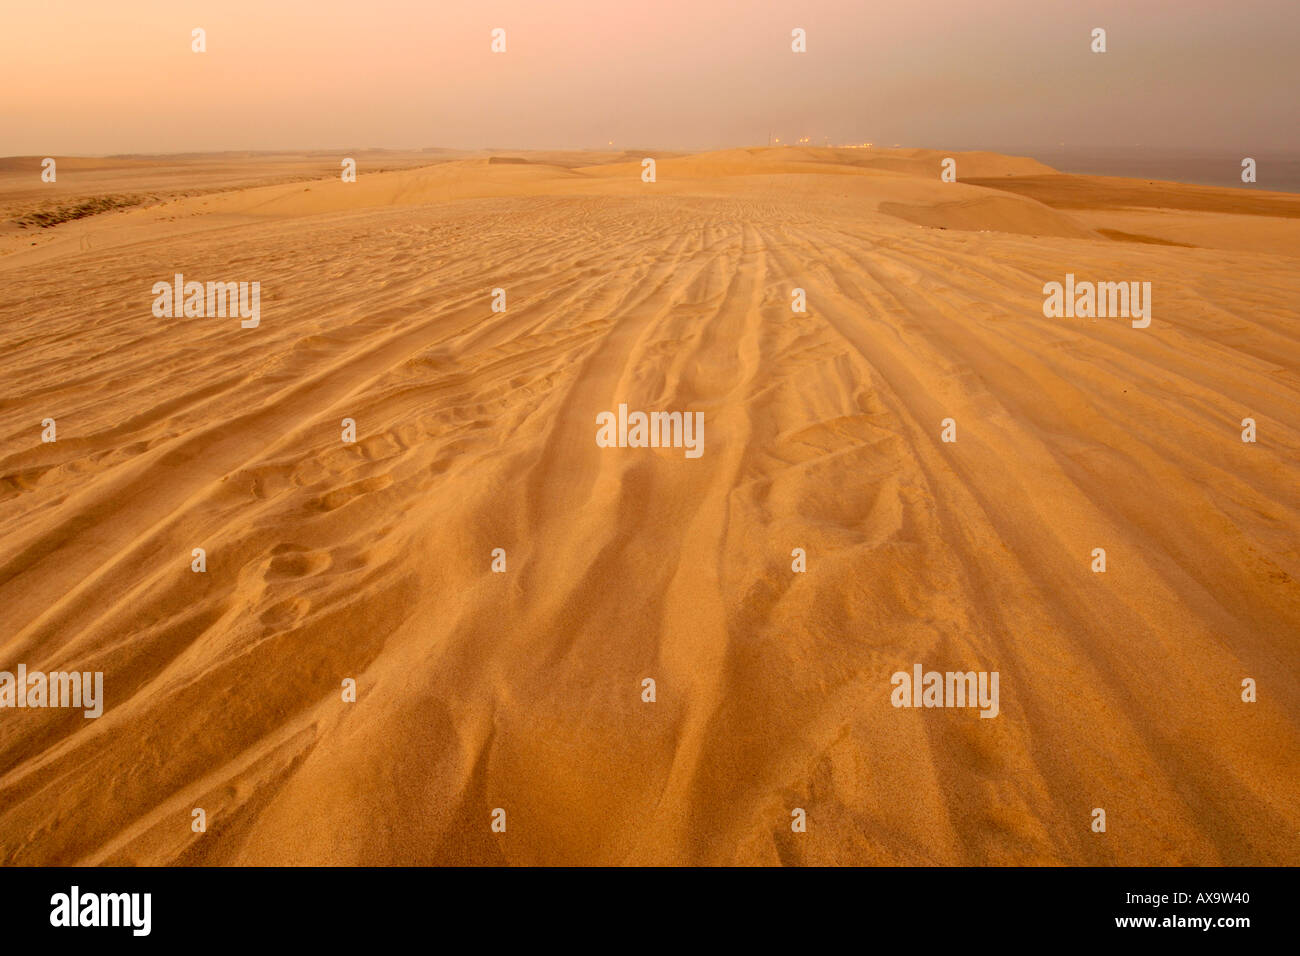 Tyre tracks in the dunes of the Inland Sea (Khor al Adaid) in southern Qatar. - Stock Image